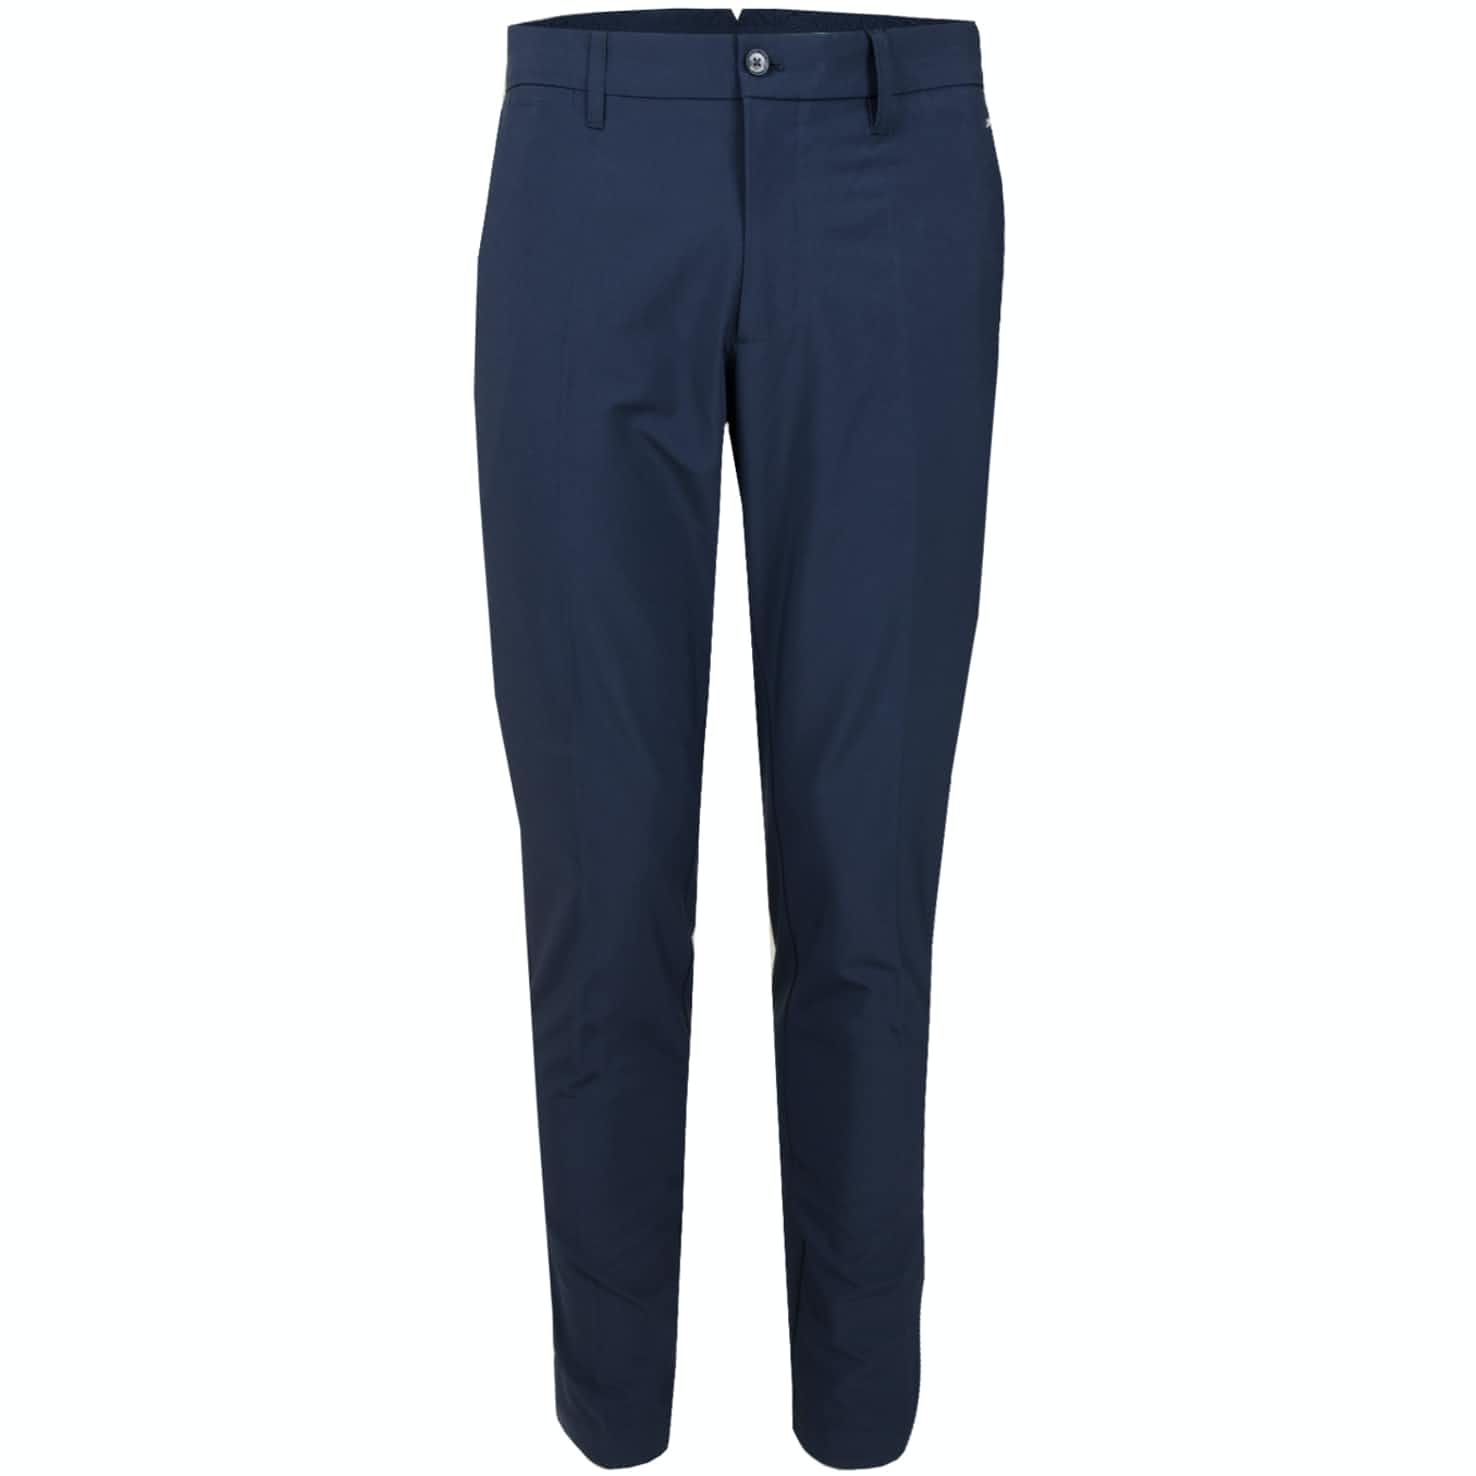 Ellott Tight Fit Micro Stretch JL Navy - 2020